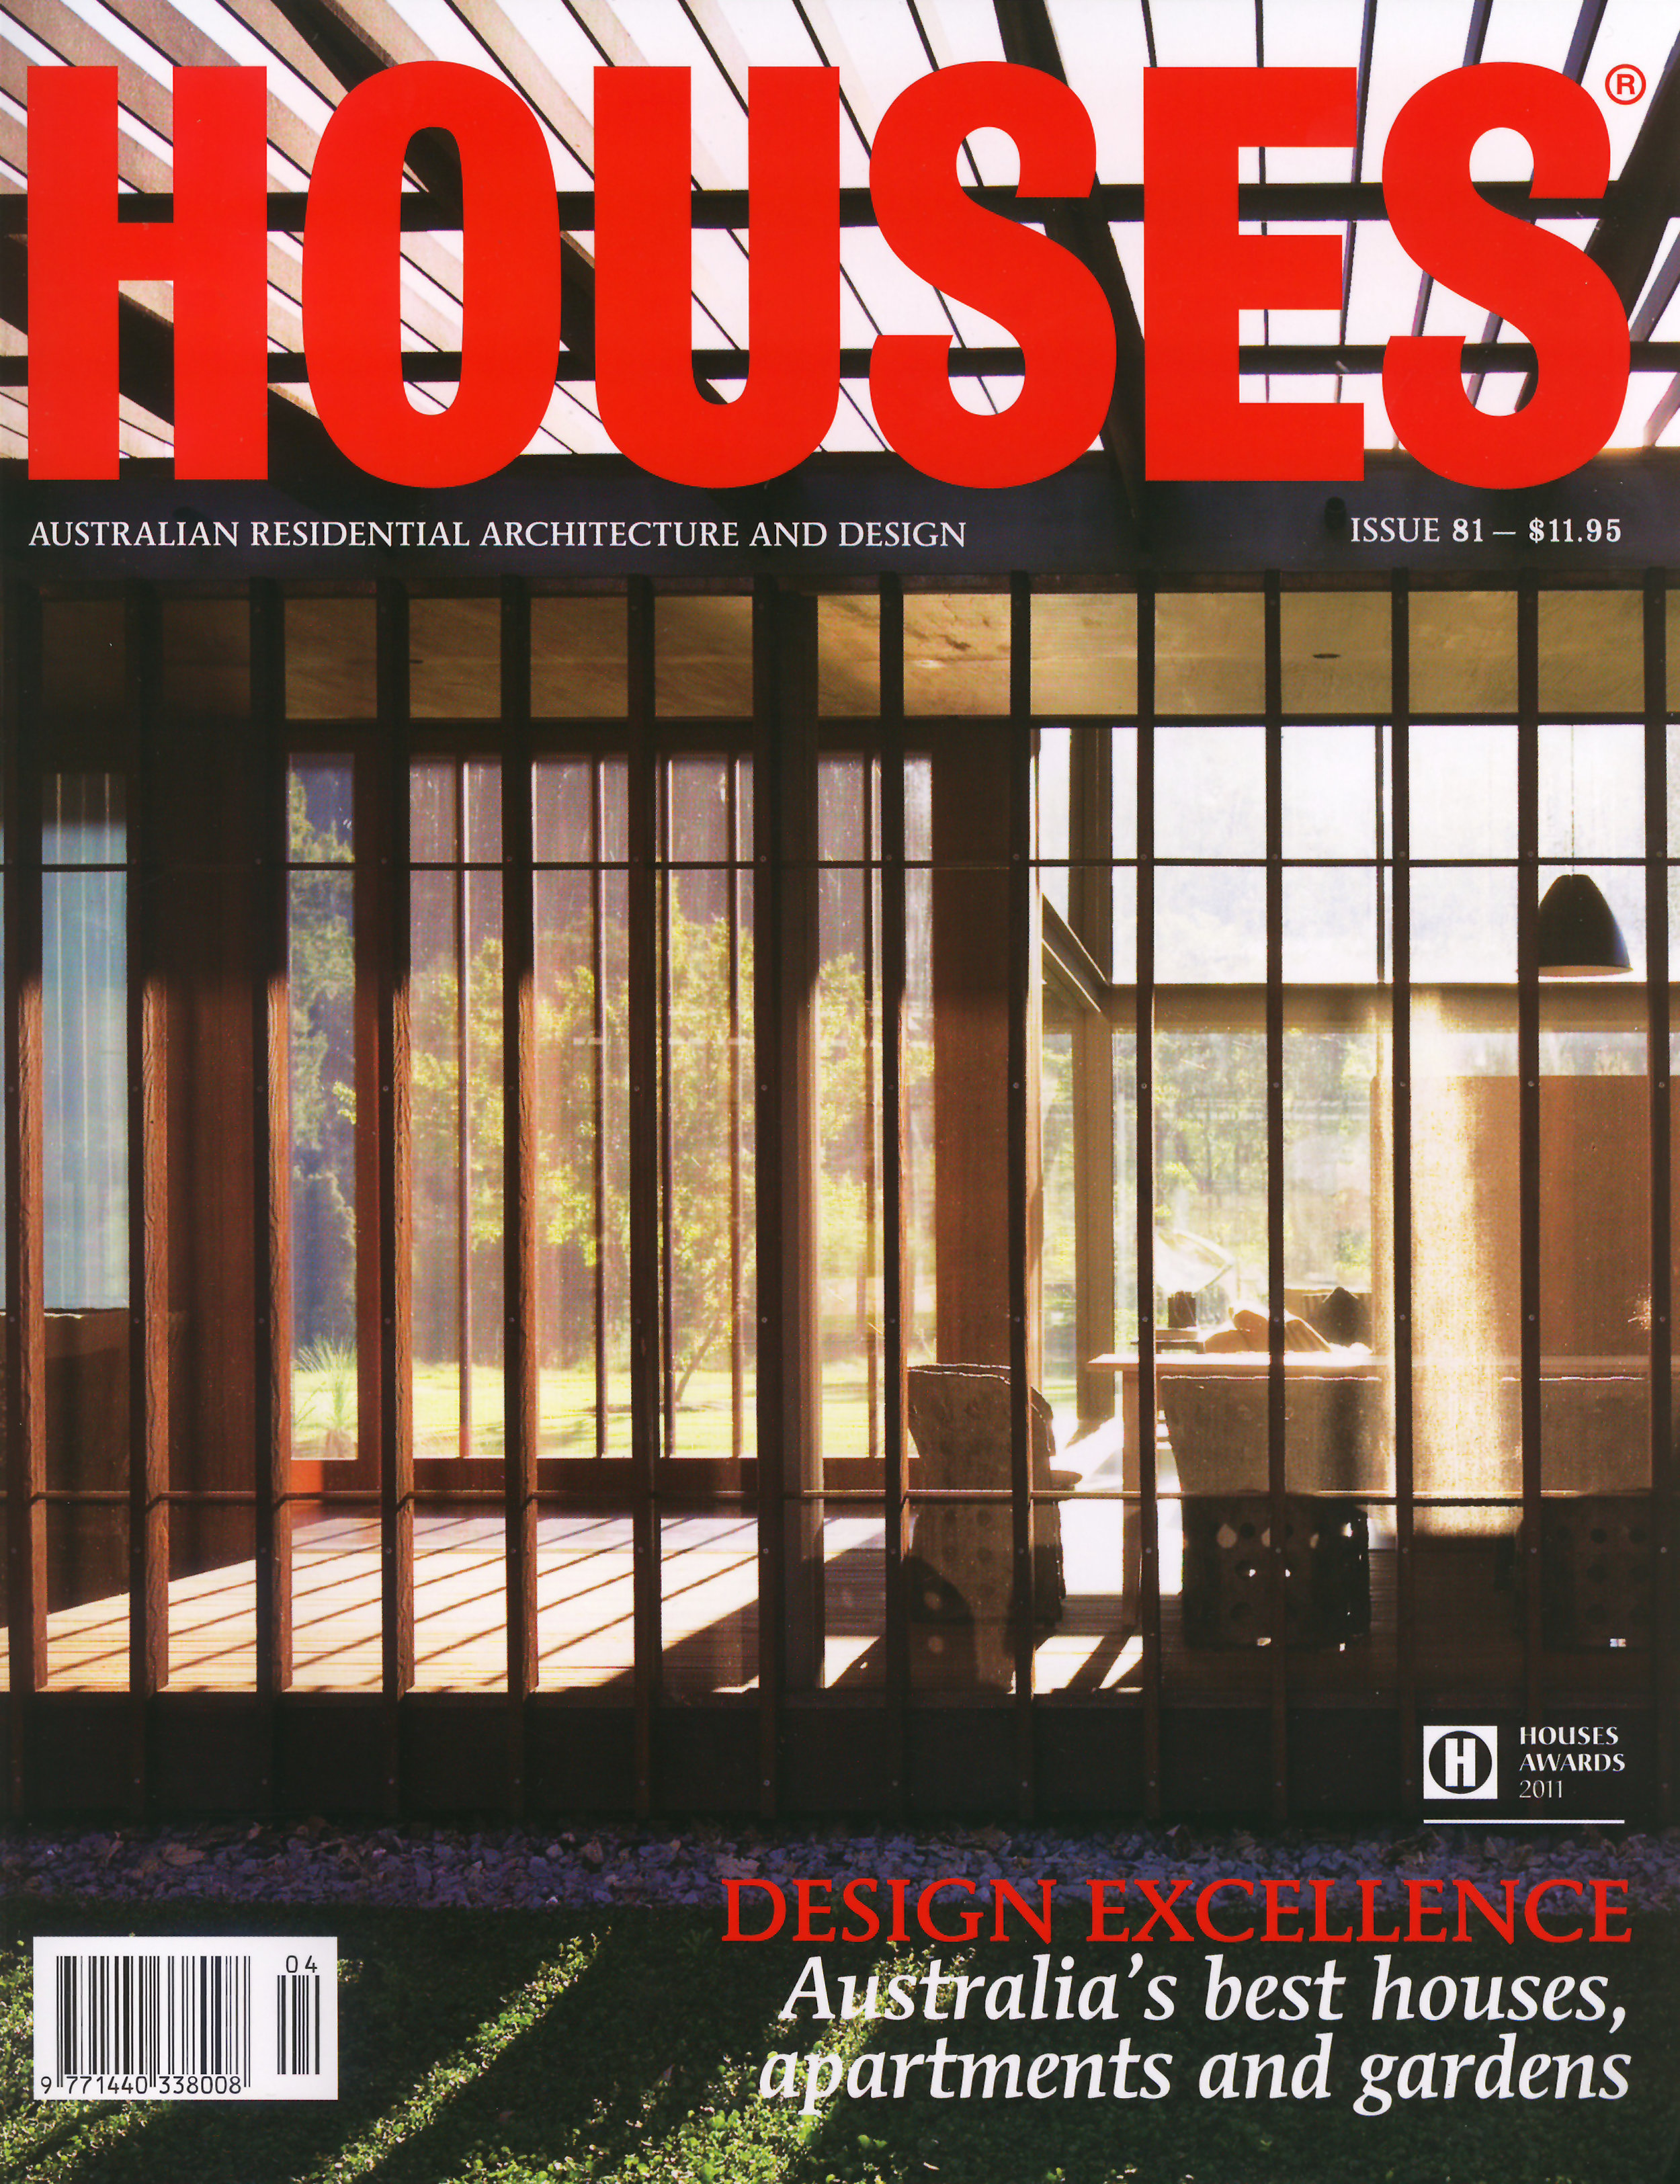 BC-HOUSES ISSUE 81.jpg